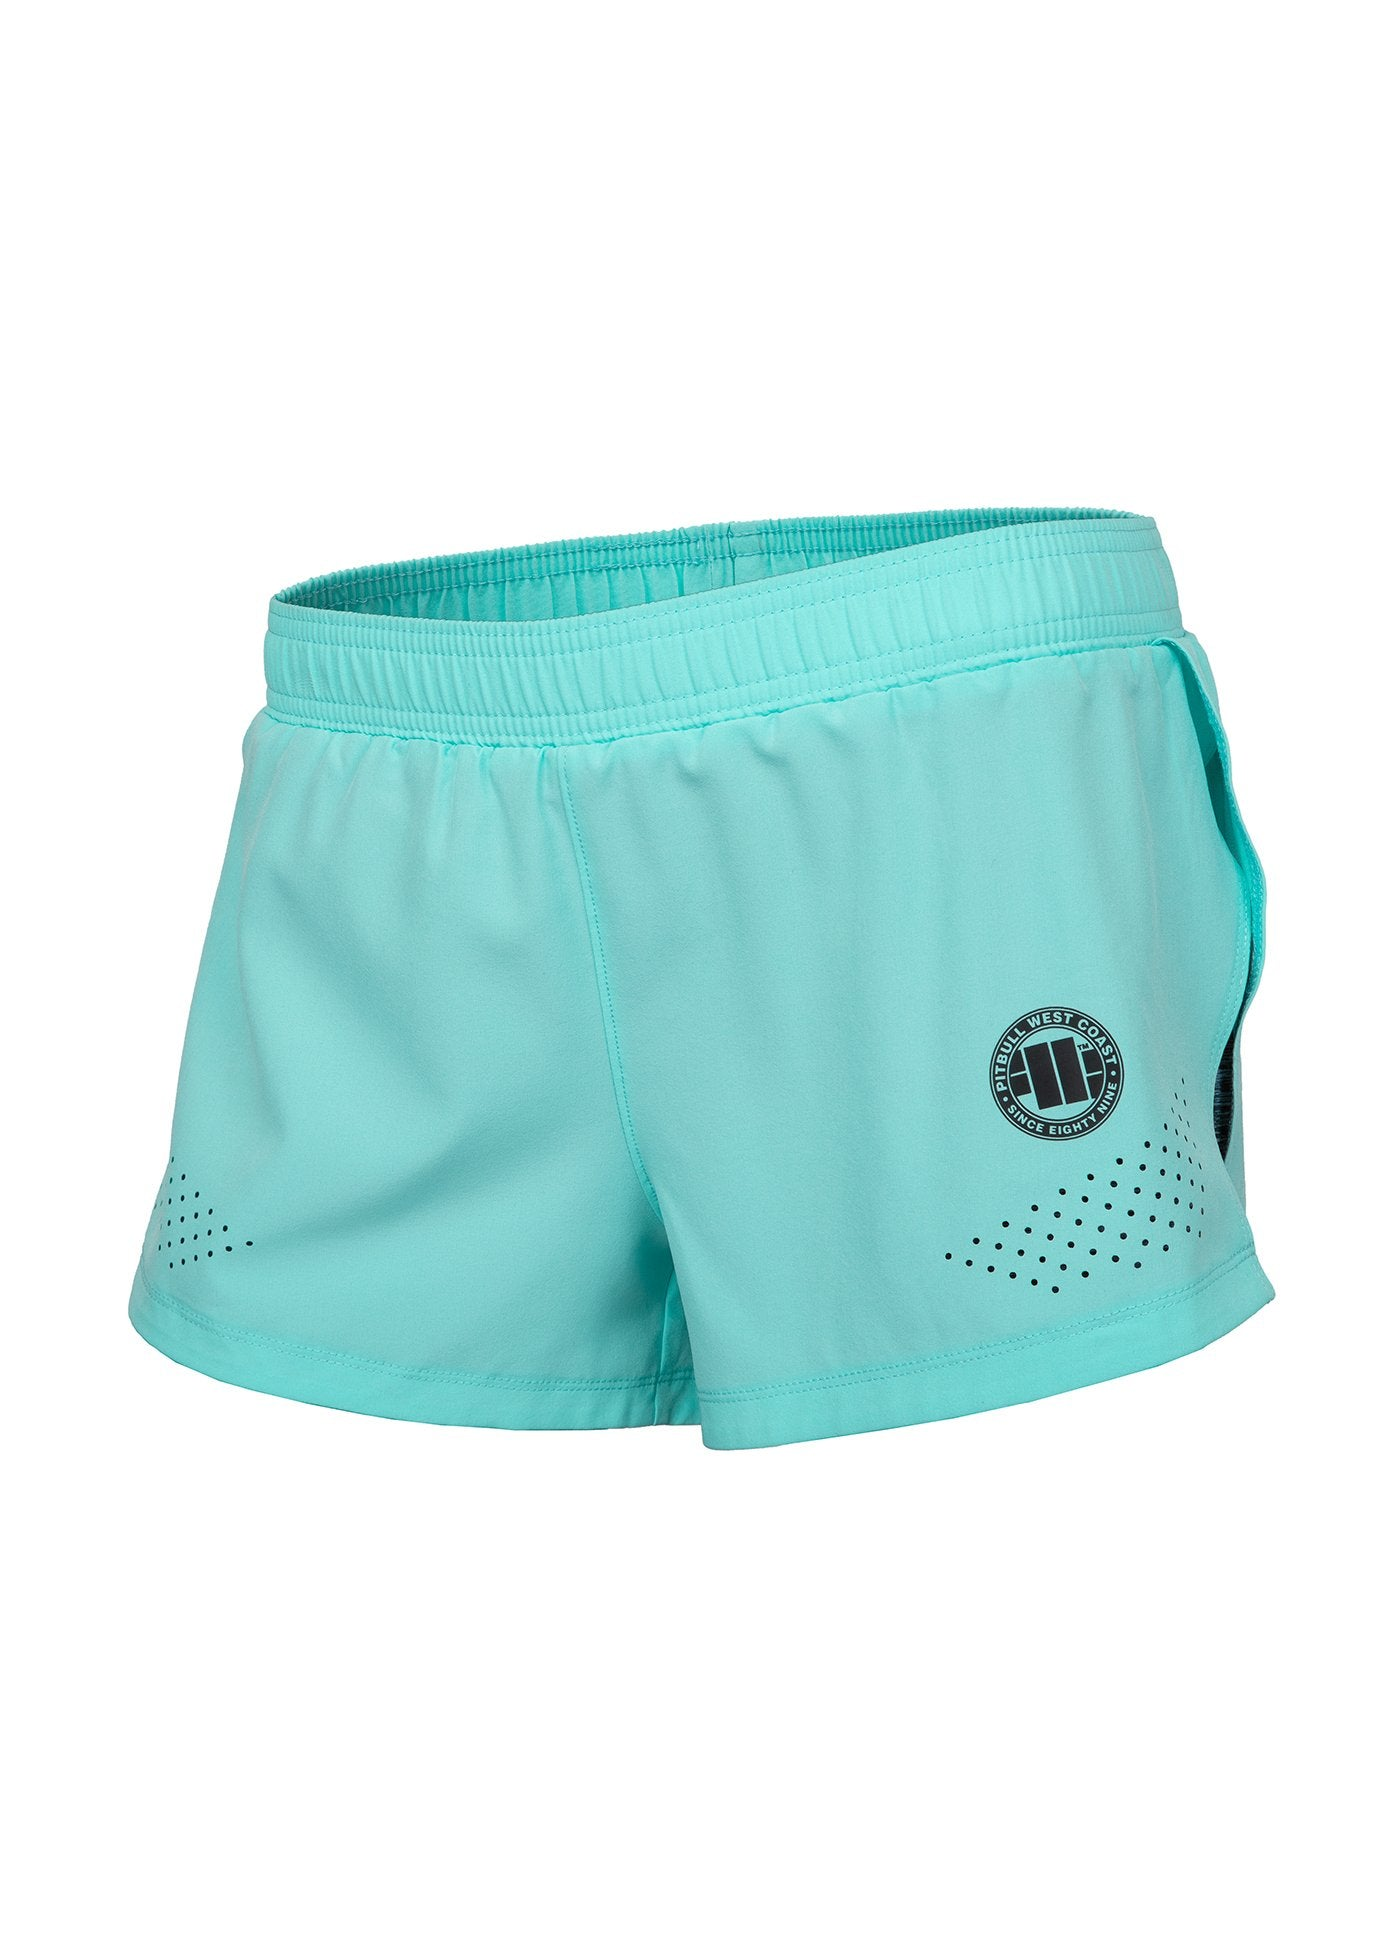 Women Shorts PRO PLUS MLG Turquoise Melange - Pitbull West Coast U.S.A.